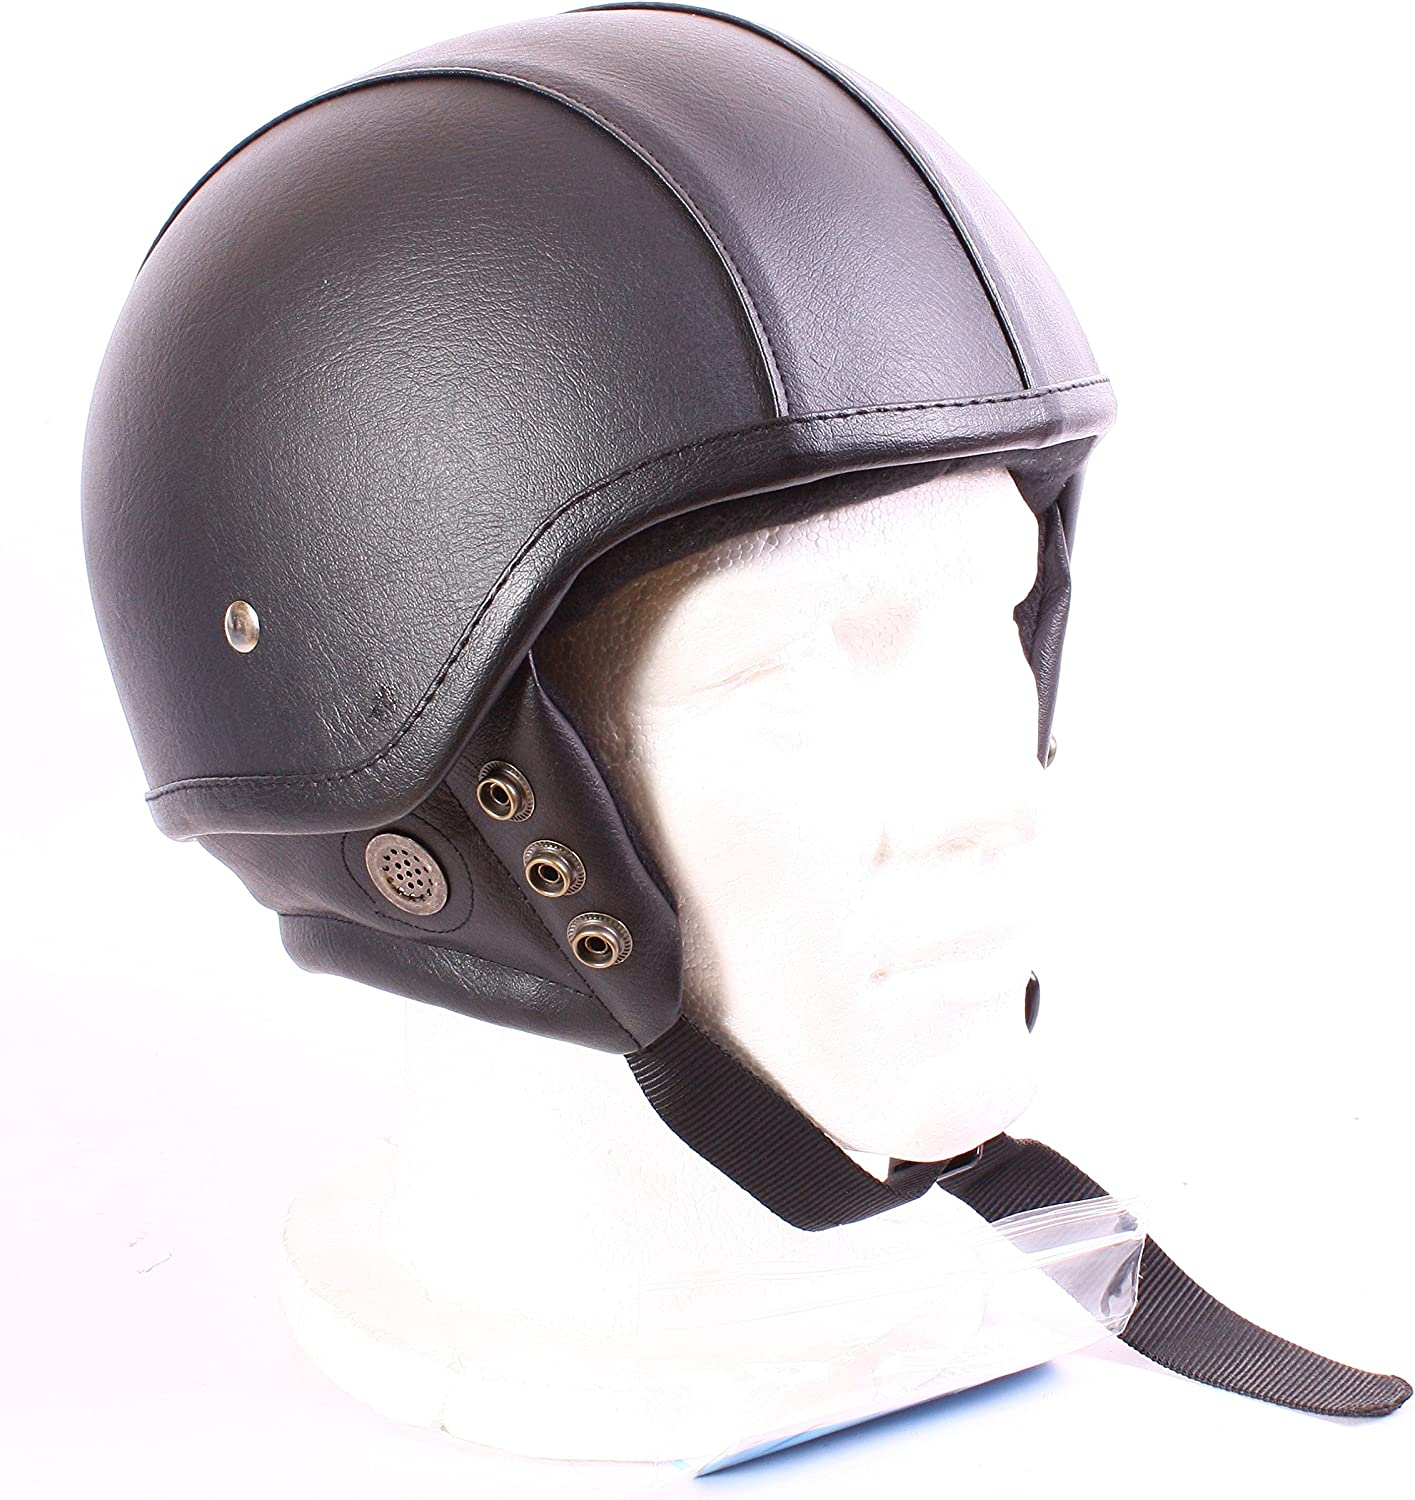 MOTORCYCLE HELMET ABS SHELL LEATHER COVERED OPEN FACE